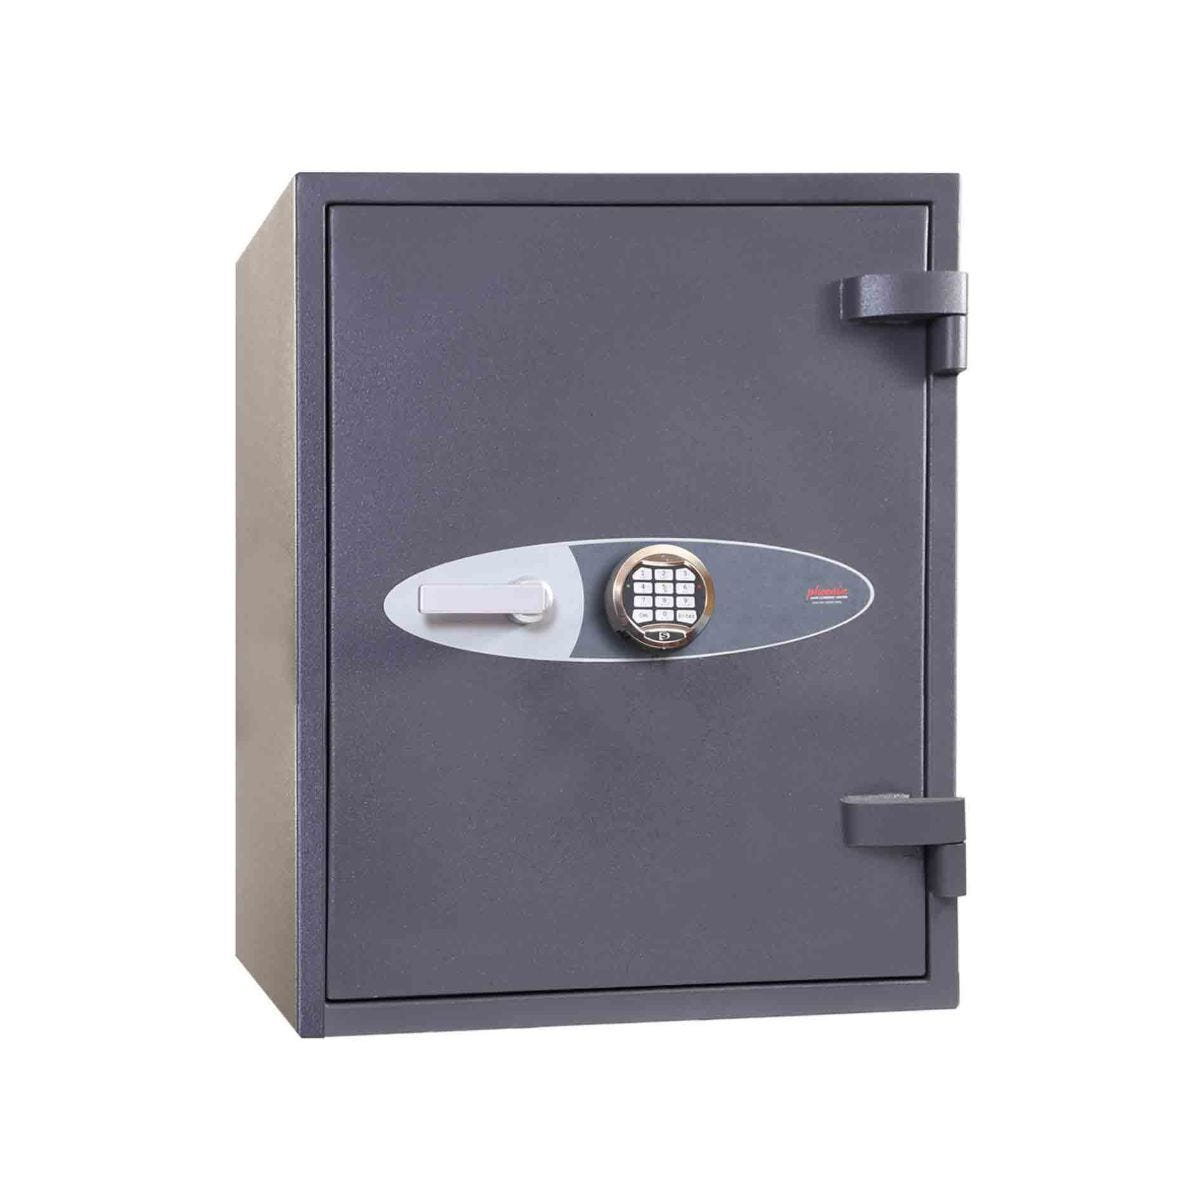 Phoenix Neptune HS1054E High Security Euro Grade 1 Safe with Electronic Lock Size 4